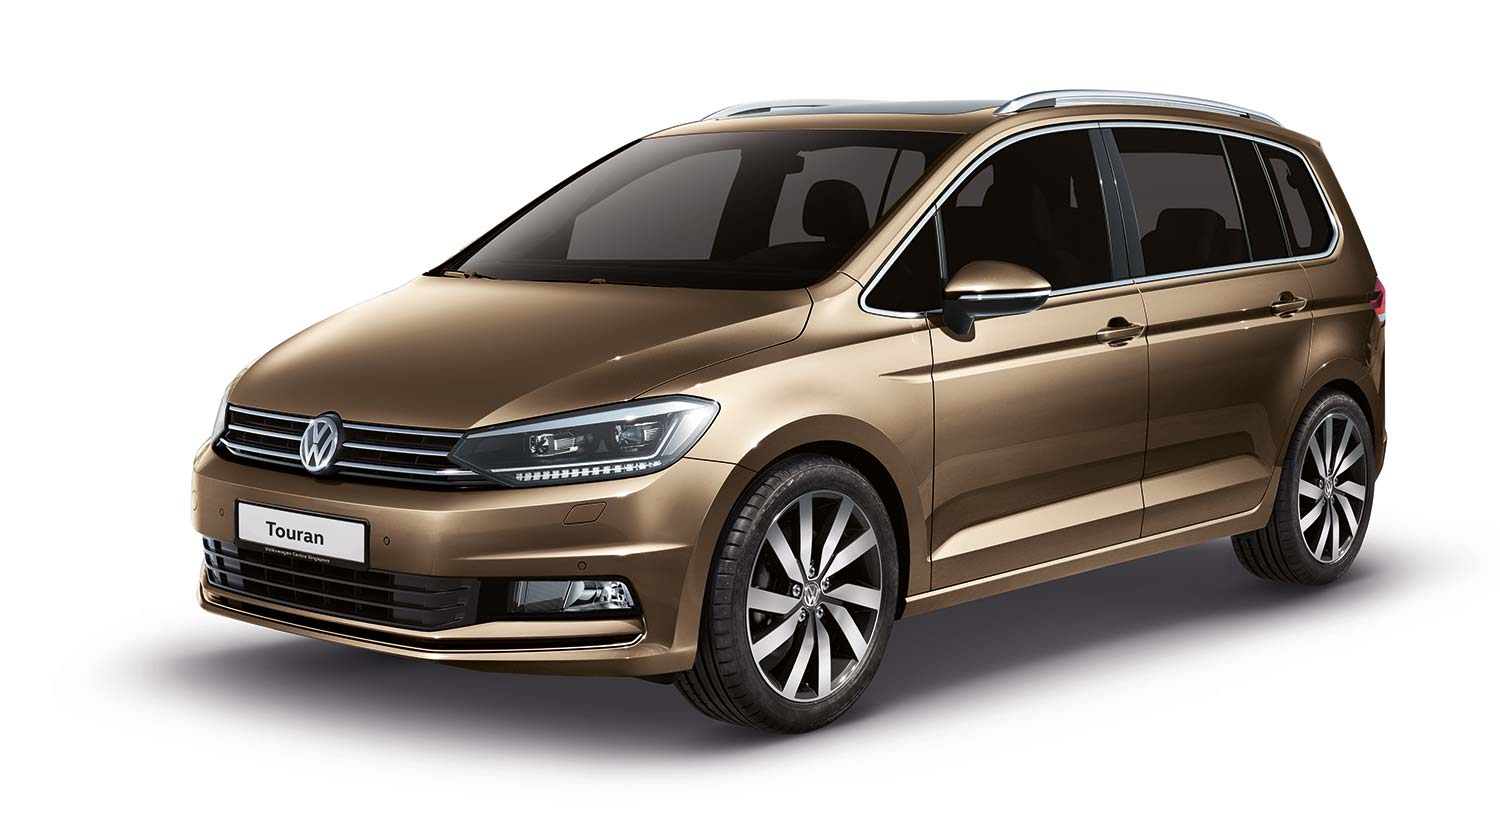 Kick Off The New Year And Win A Volkswagen Touran At